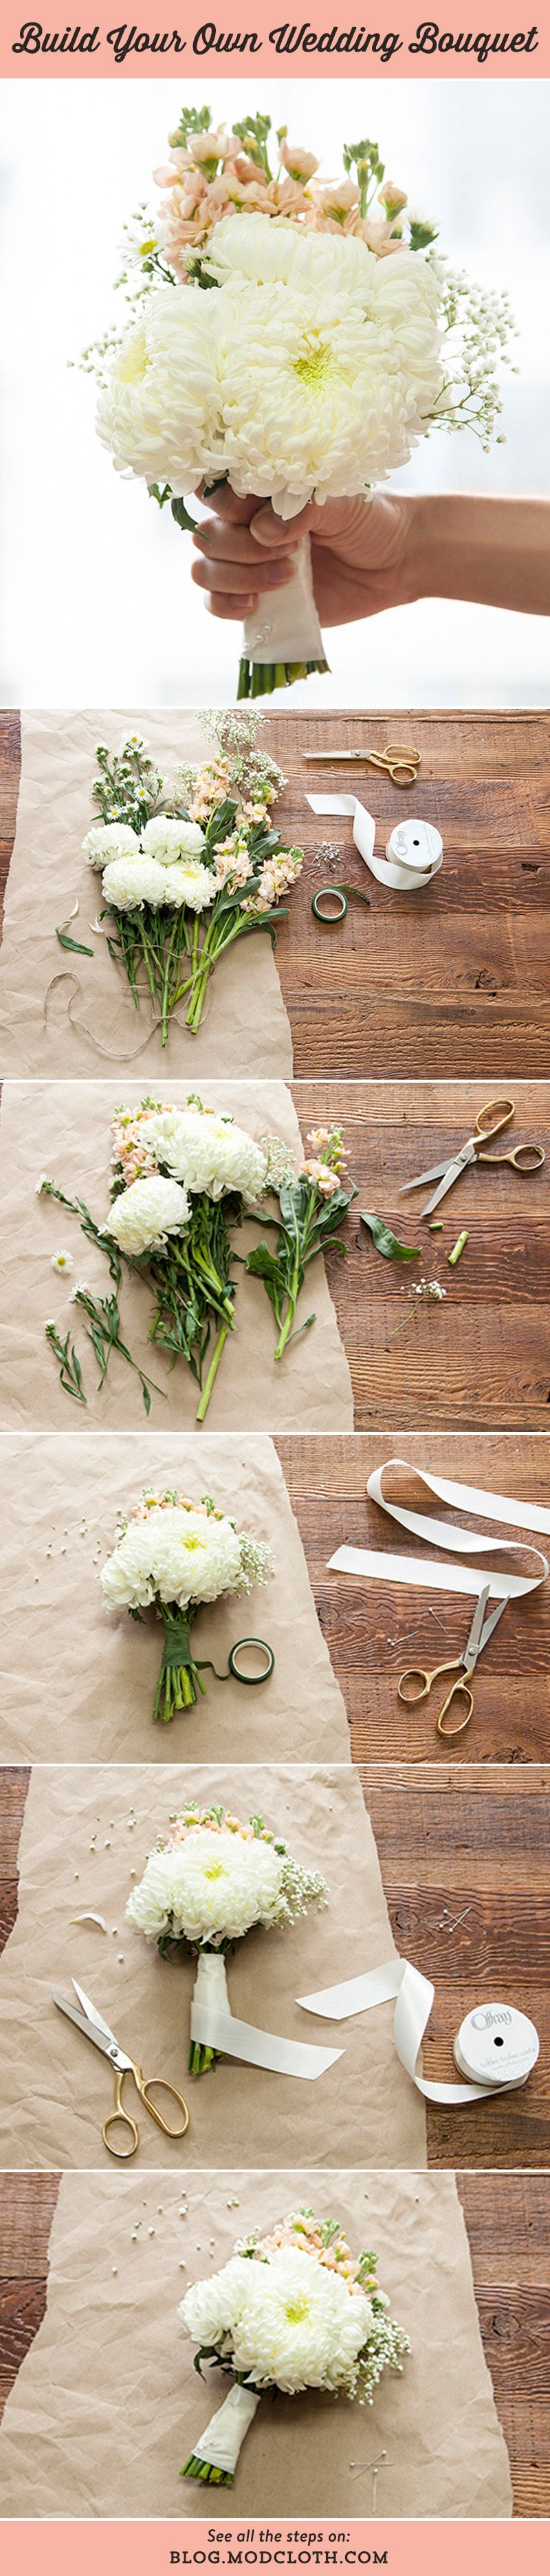 Build Your Own Wedding Bouquet With This Easy Diy The How To Not Exactly Look She Wants